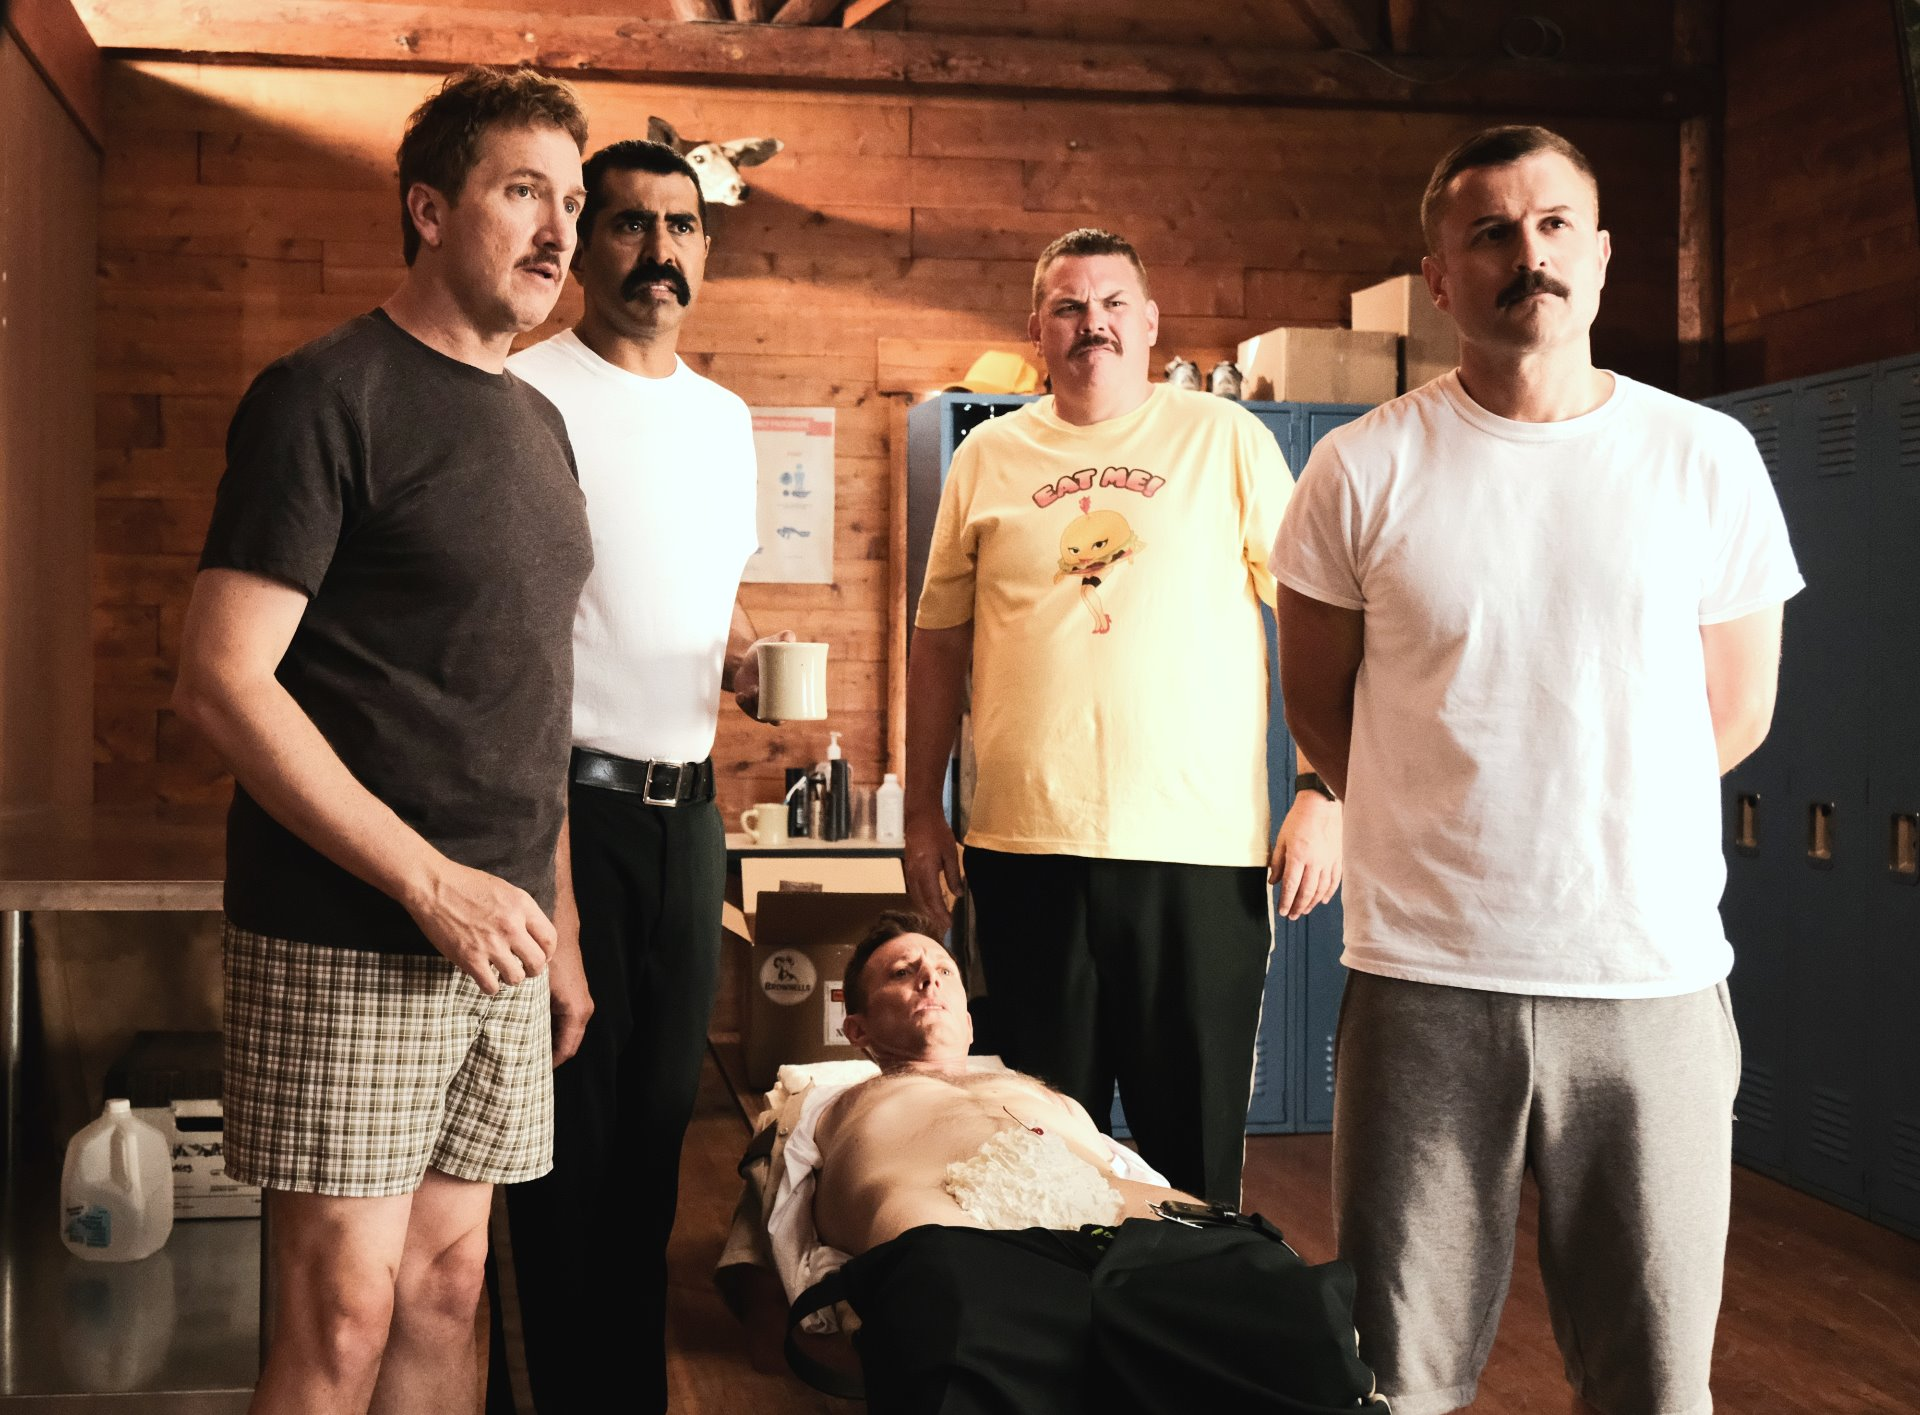 Ball shaving in Super Troopers 2.